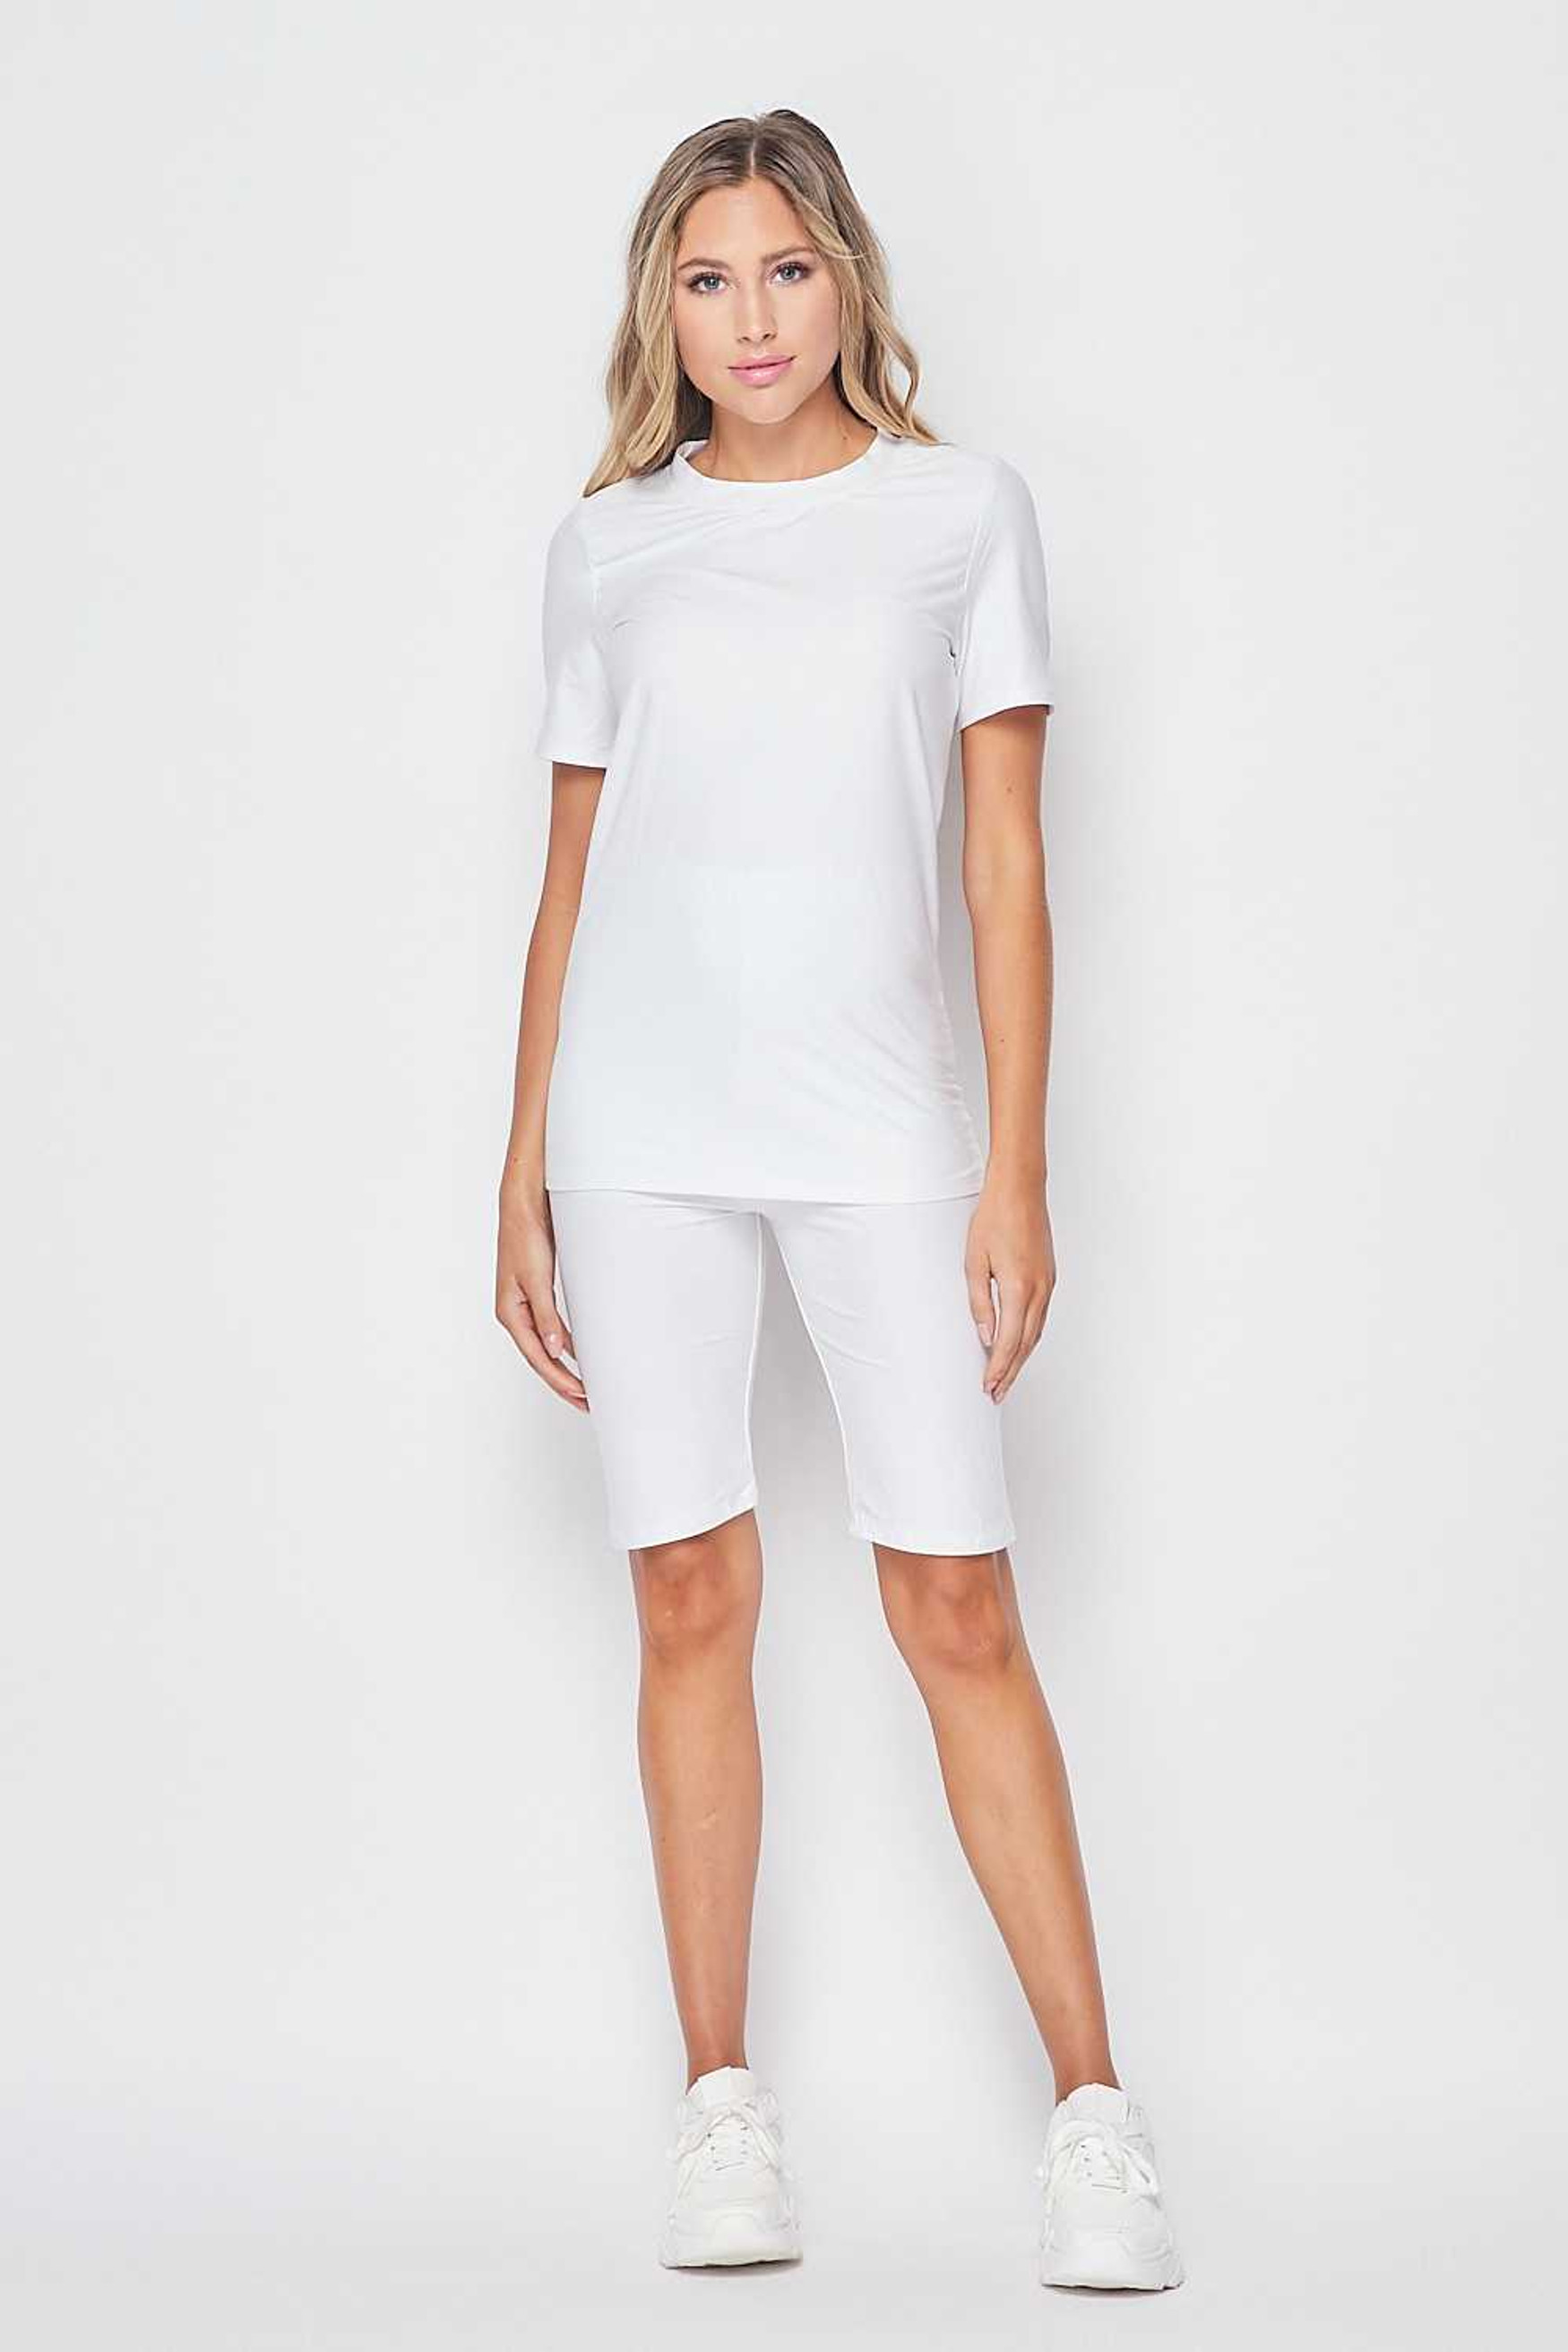 Front of White Buttery Soft Basic Solid Biker Shorts and T-Shirt Set